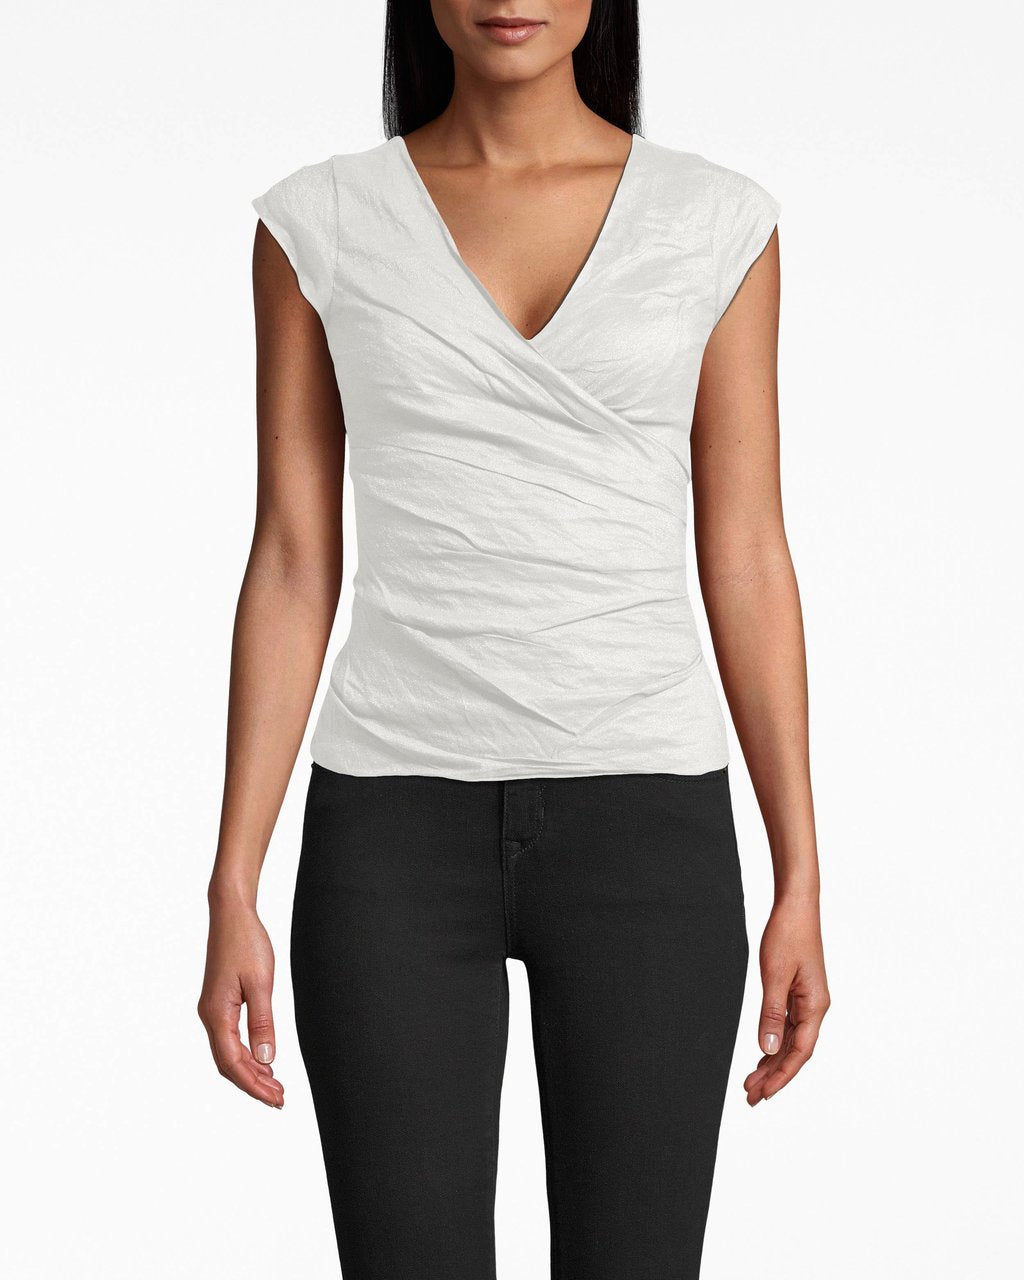 Cotton Metal Logan Top - White